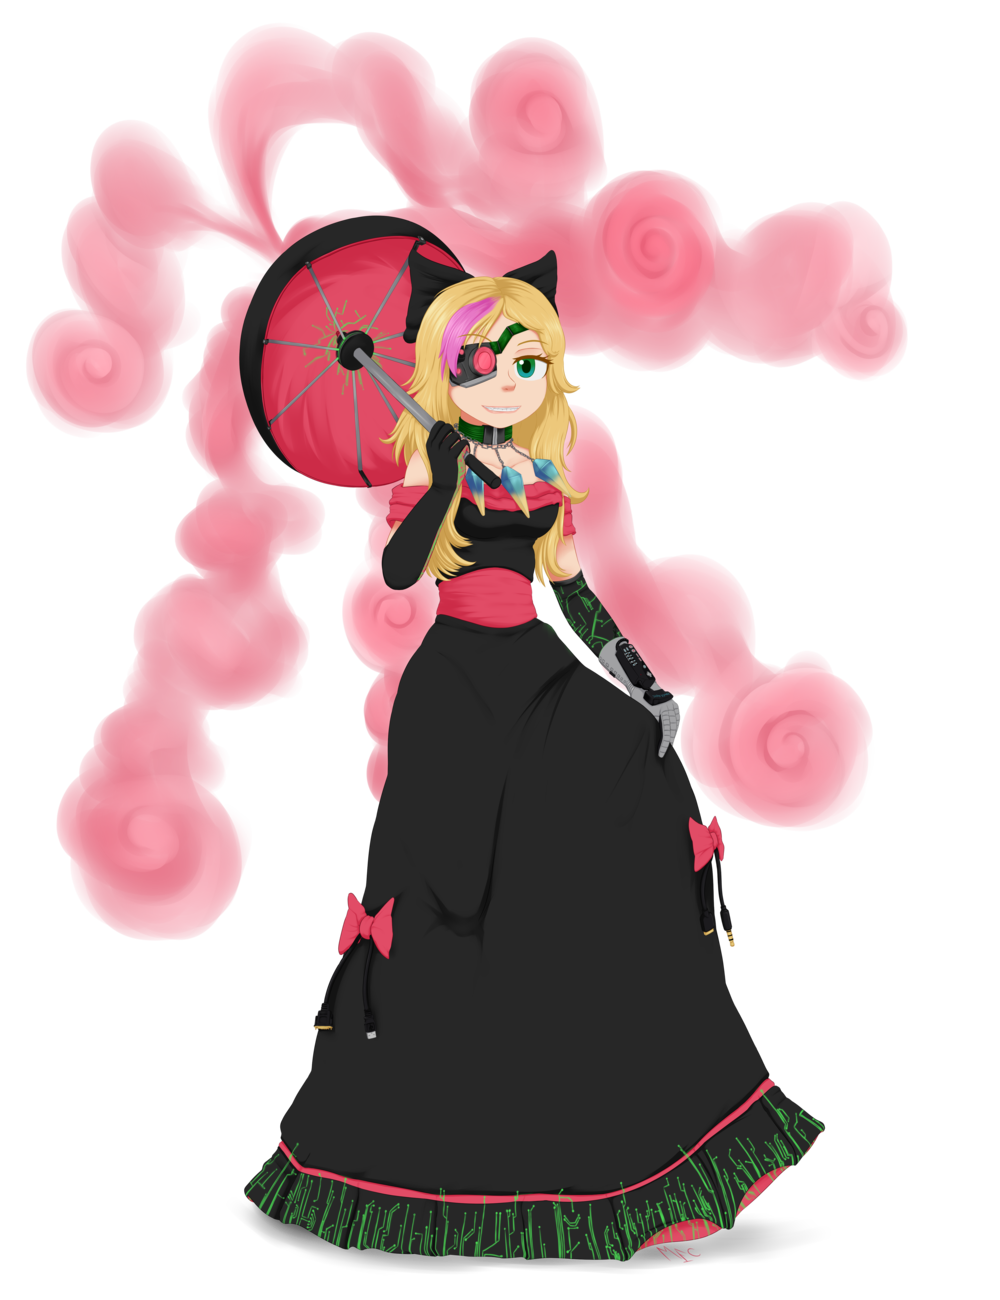 Modemoiselle Grace, by MentalCrash. Imagine Grace with longer, shoulder-length blonde hair, a pink hair streak over one eye, a bionic eye patch deal, a parasol spraying pink hypnogas, and a fancy pink and black ball gown with cables hanging from the ribbons and circuit traces around the foot.